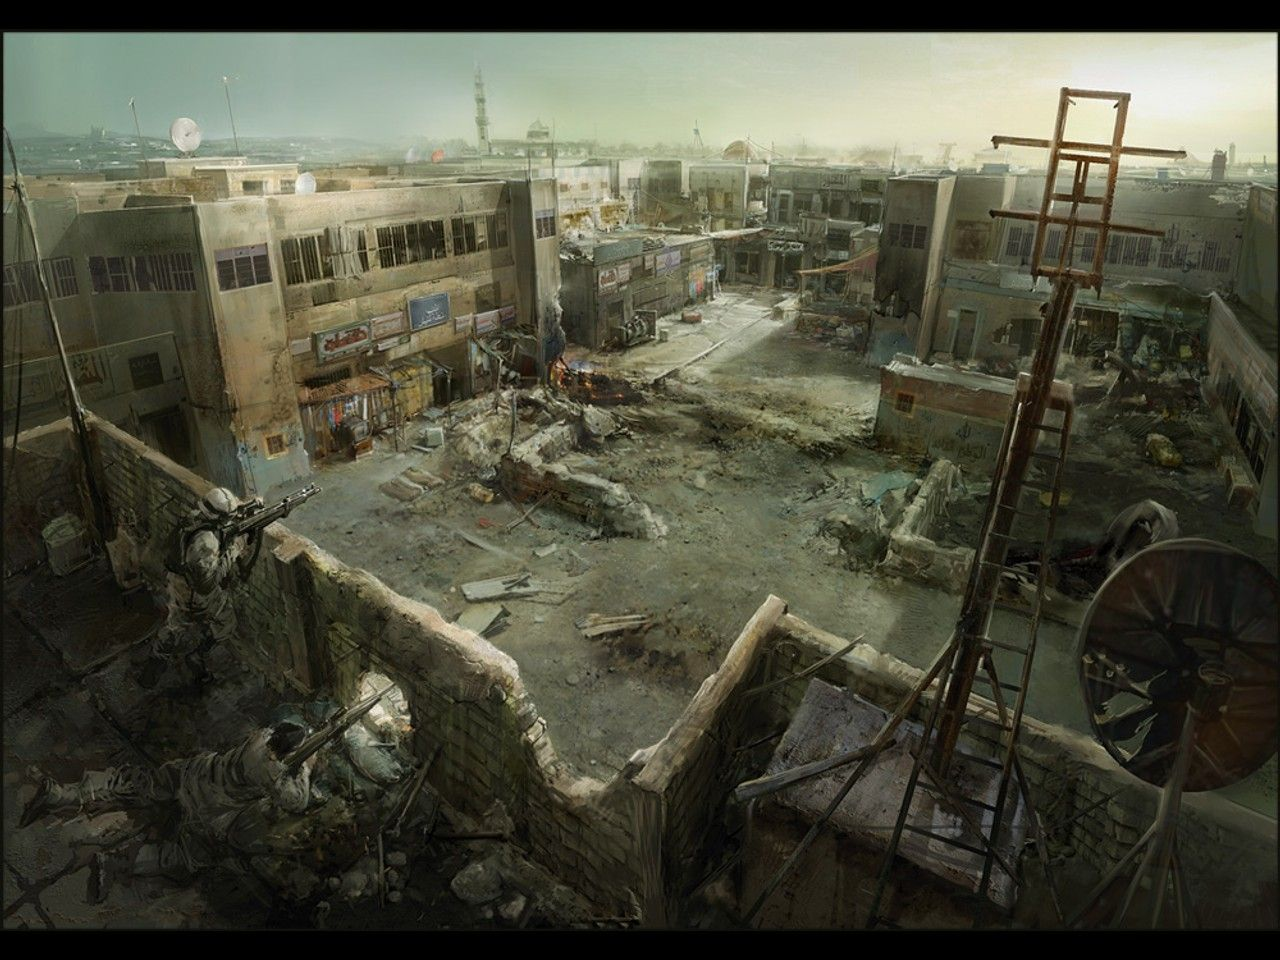 Pin by Tyler Bill on Middle East in 2019 | Environment concept art